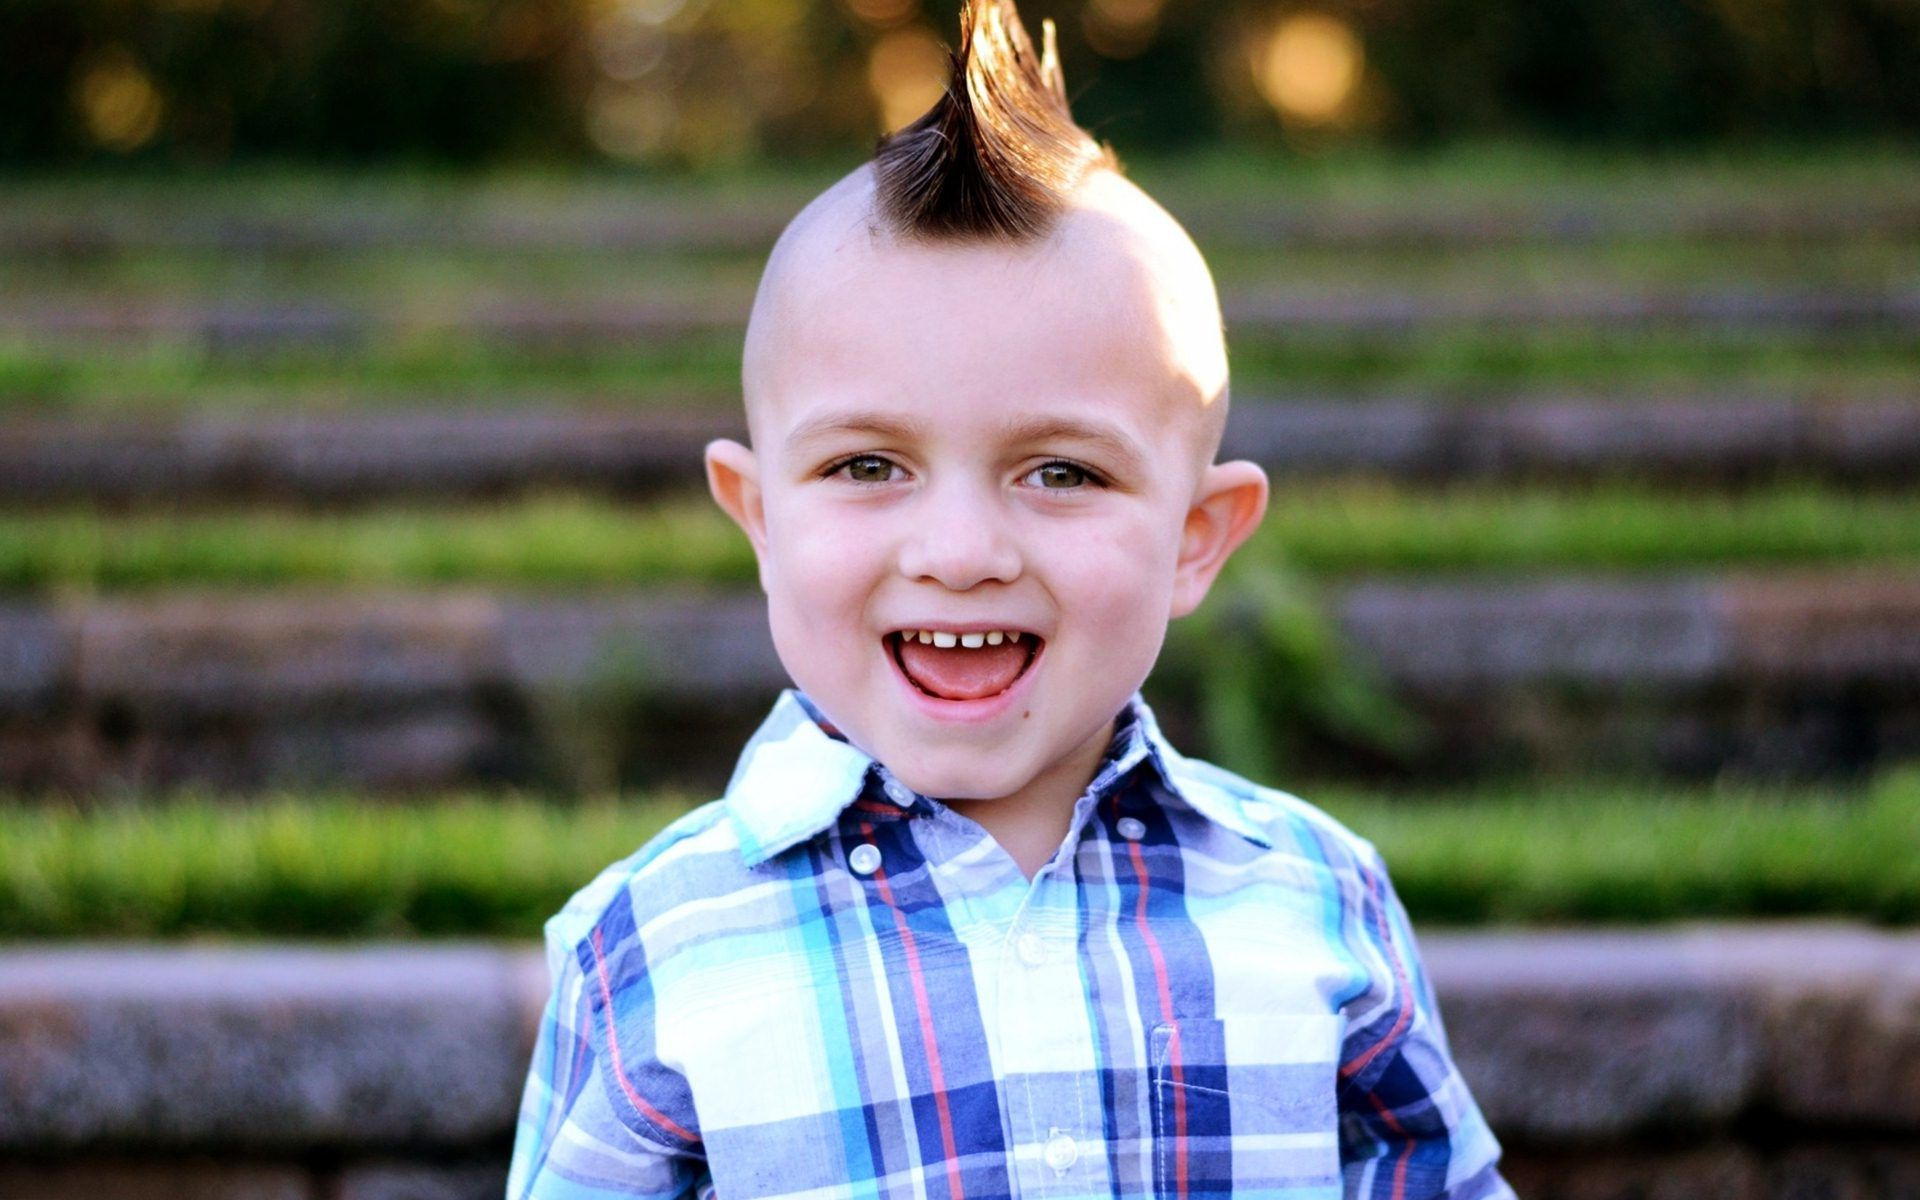 Cute boys wallpapers group hd wallpapers pinterest wallpaper cute boys wallpapers group voltagebd Images